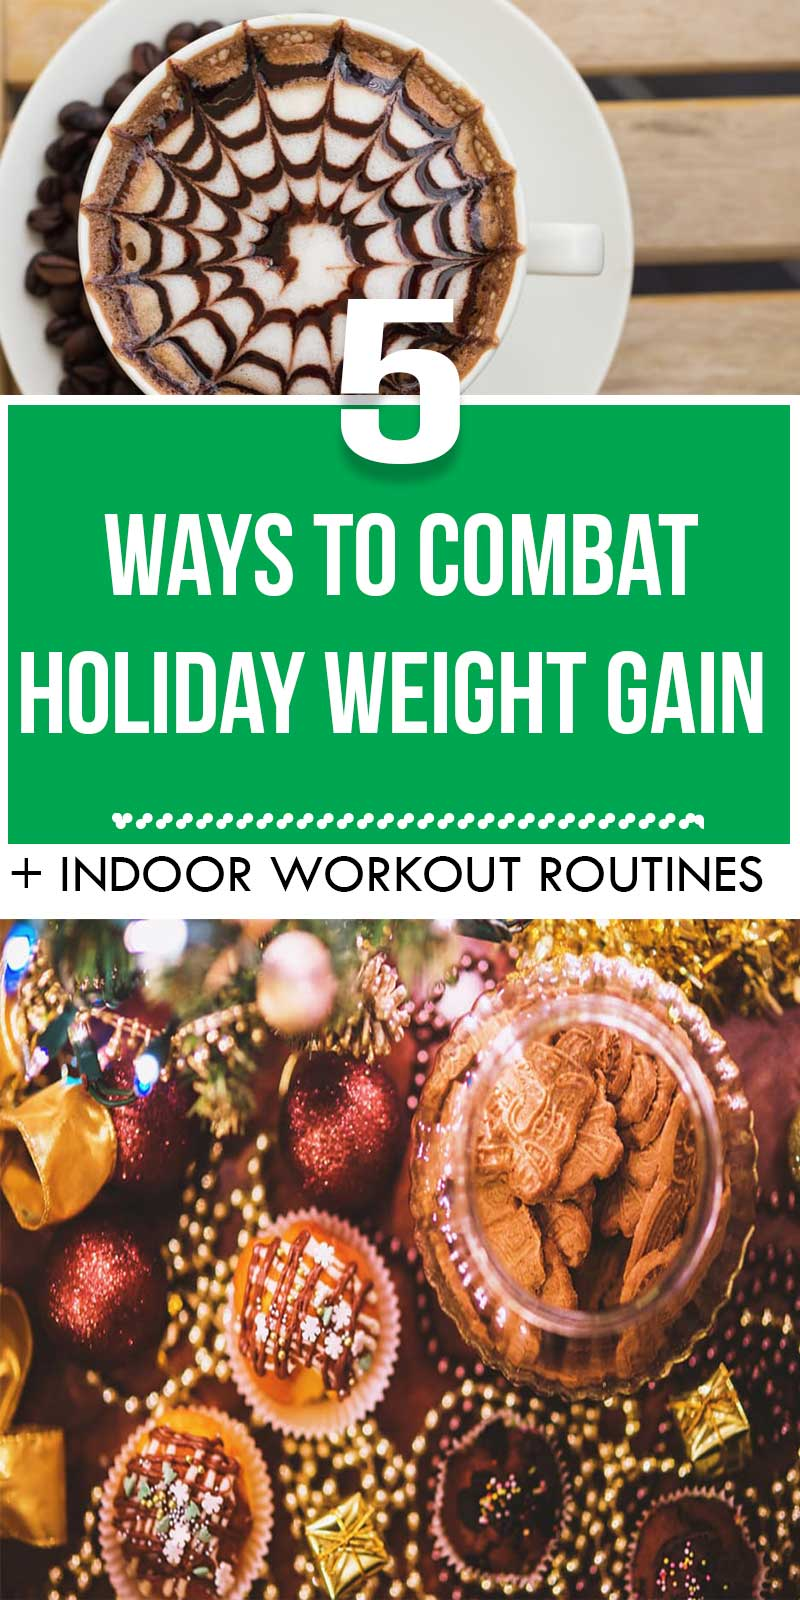 Looking for ways to prevent and combat holiday weight gain? Look no further. We all know how difficult it is to maintain weight when you're faced with cakes and alcohol and feasts and parties. And it's totally fine if you indulge every once in a while. But here's how to get on track with your weight maintenance goals for the new year.